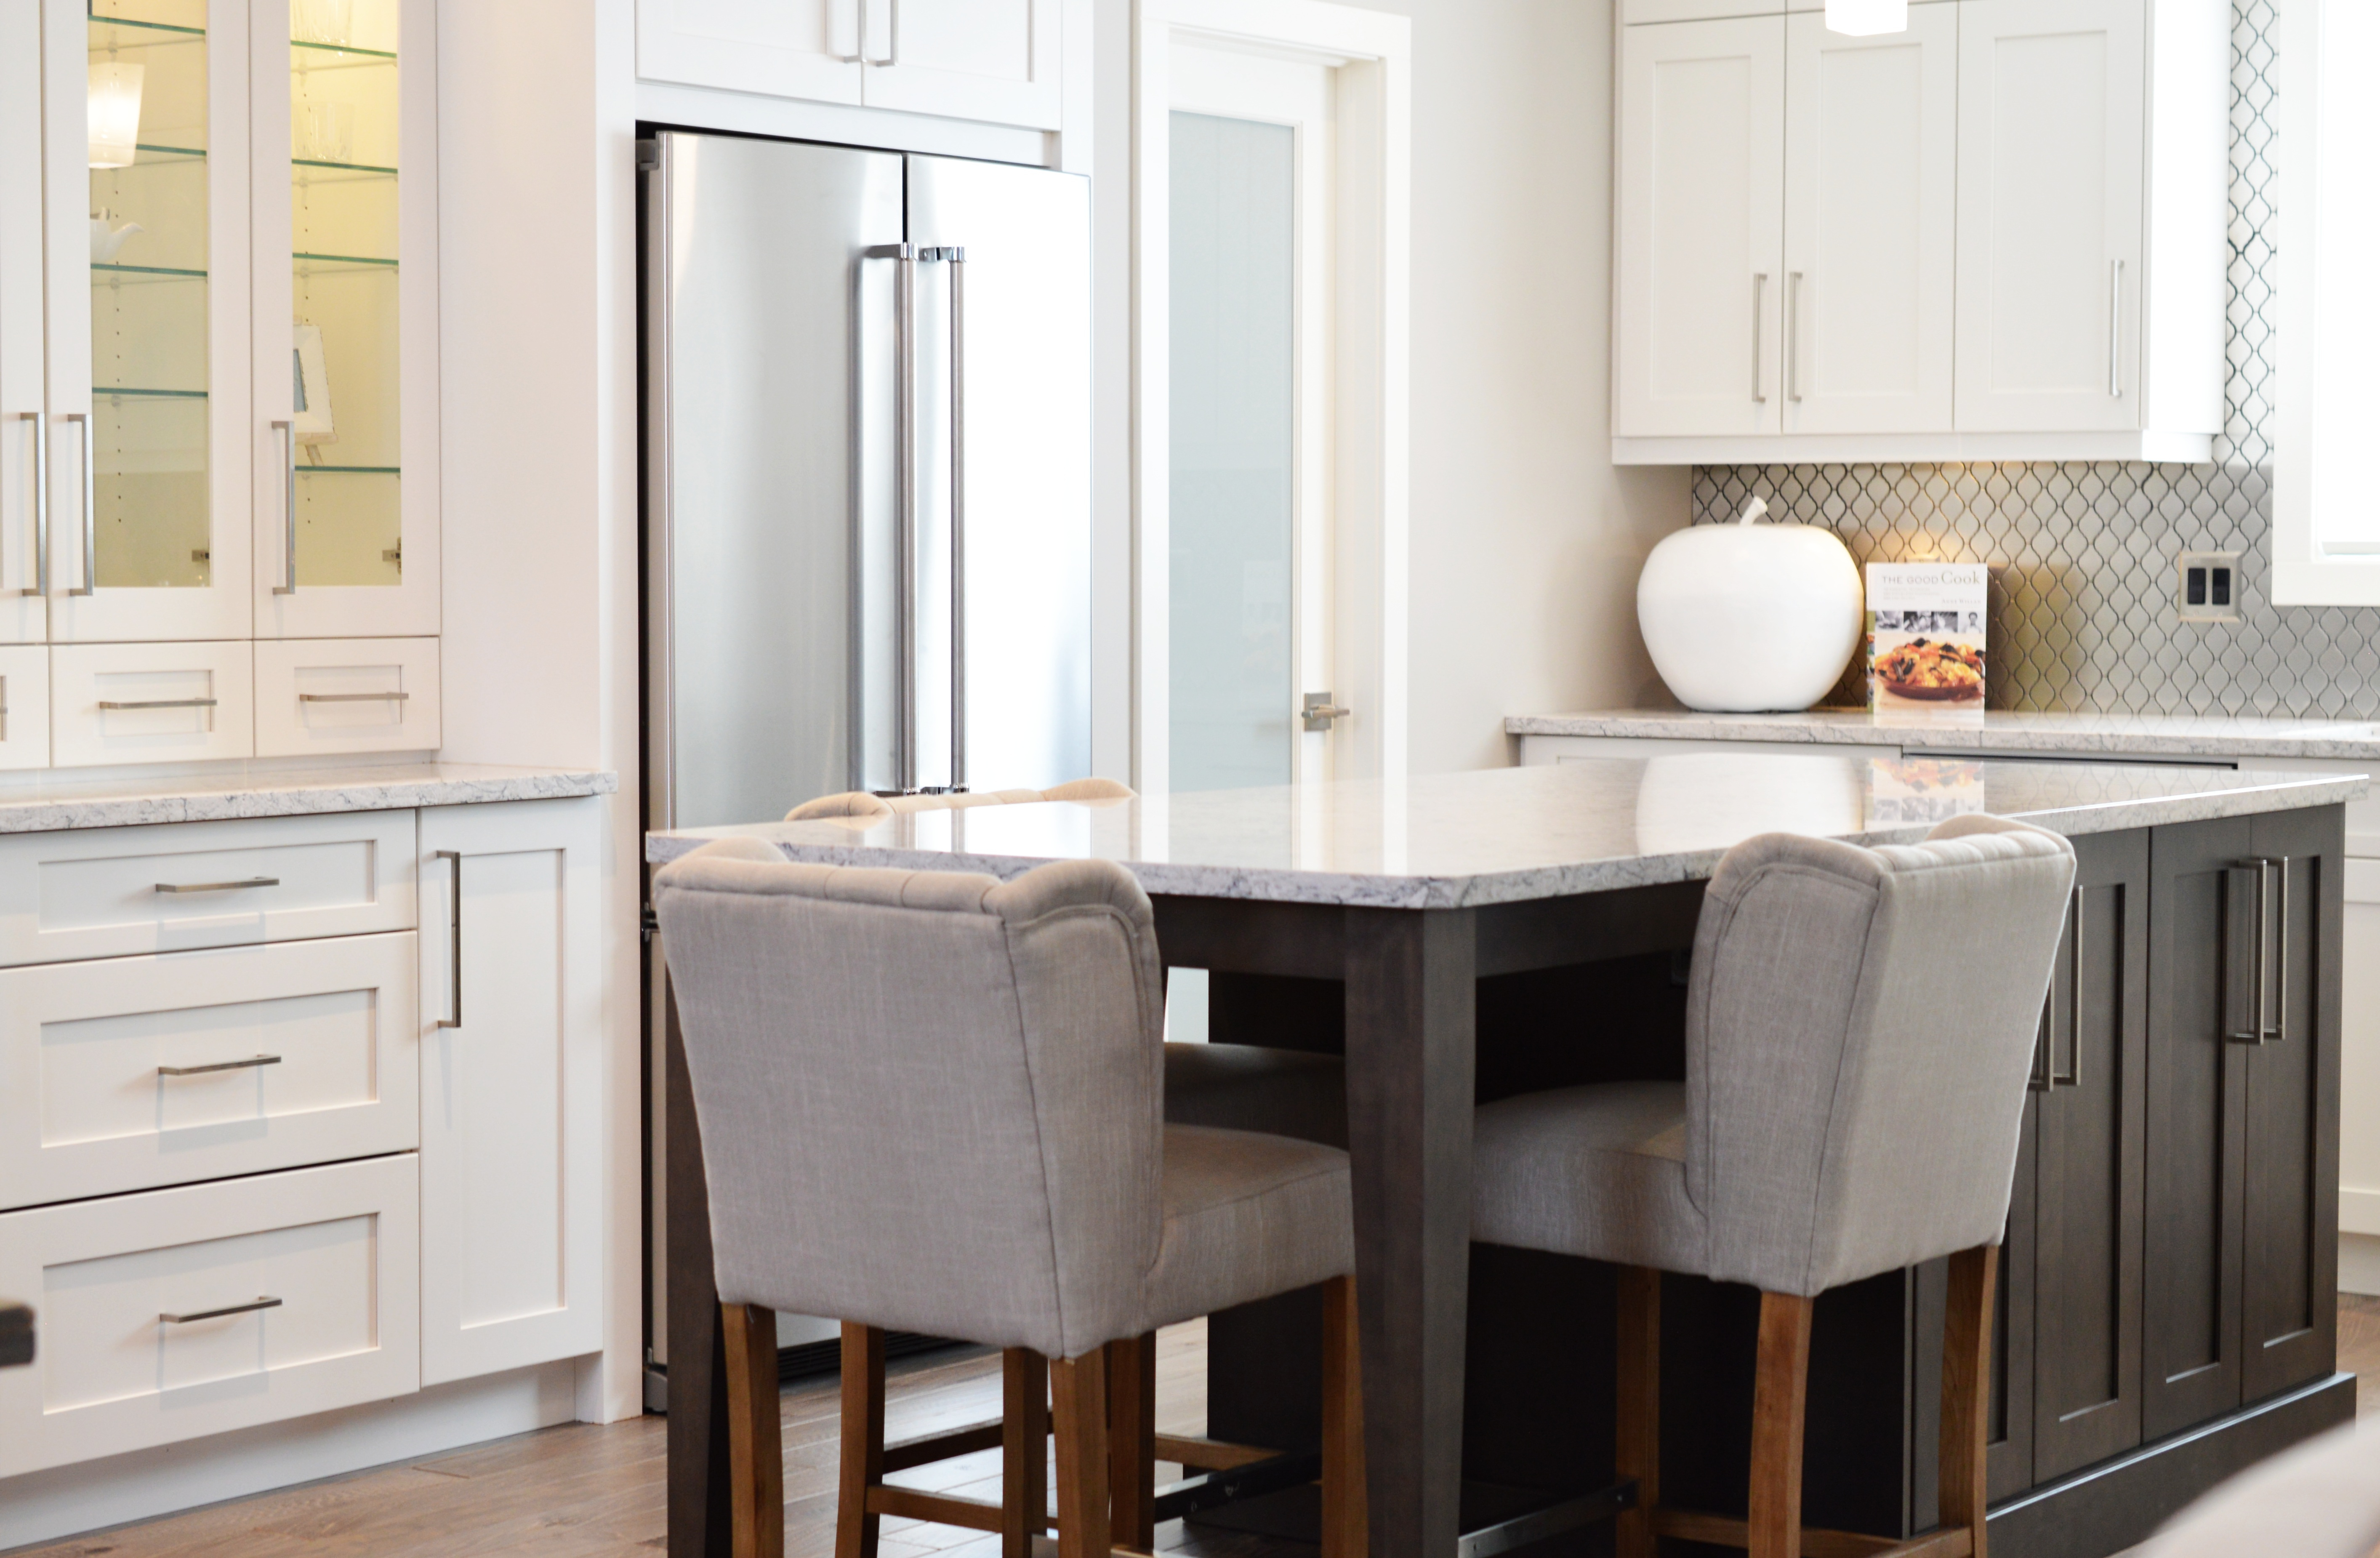 A clean modern kitchen with bar stools